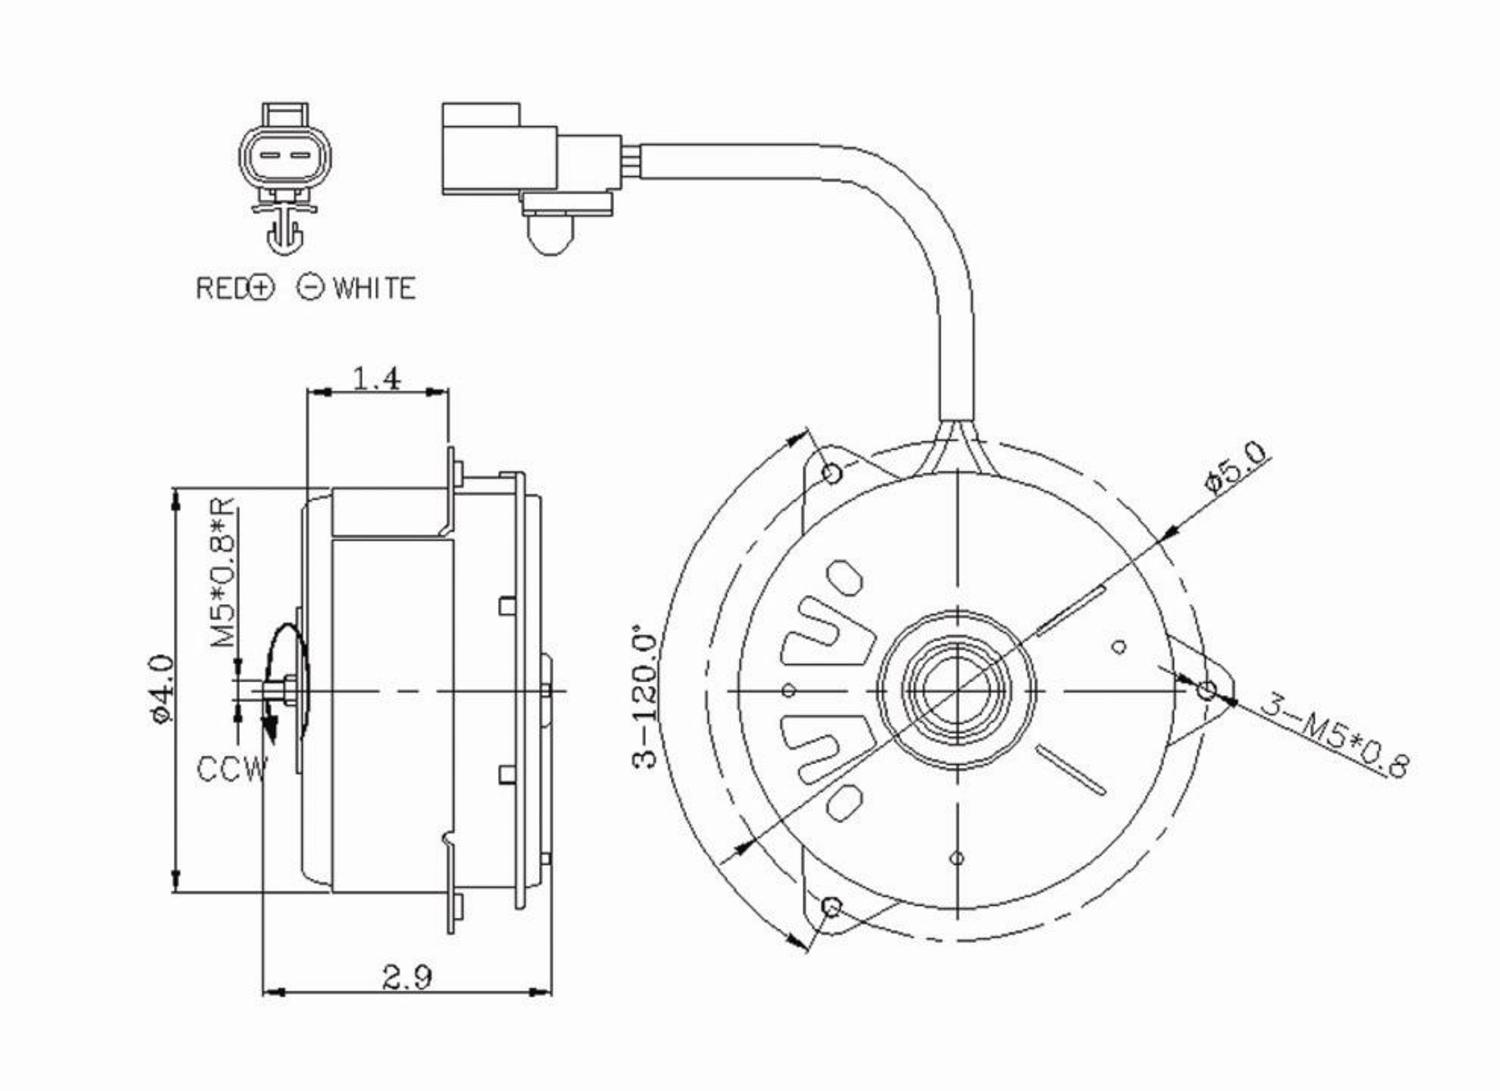 [TVPR_3874]  TYC 630320 Engine Cooling Fan Motor for Lexus ES Series, Camry, Solara  TO3116108 - Walmart.com - Walmart.com | Lexus Engine Cooling Diagram |  | Walmart